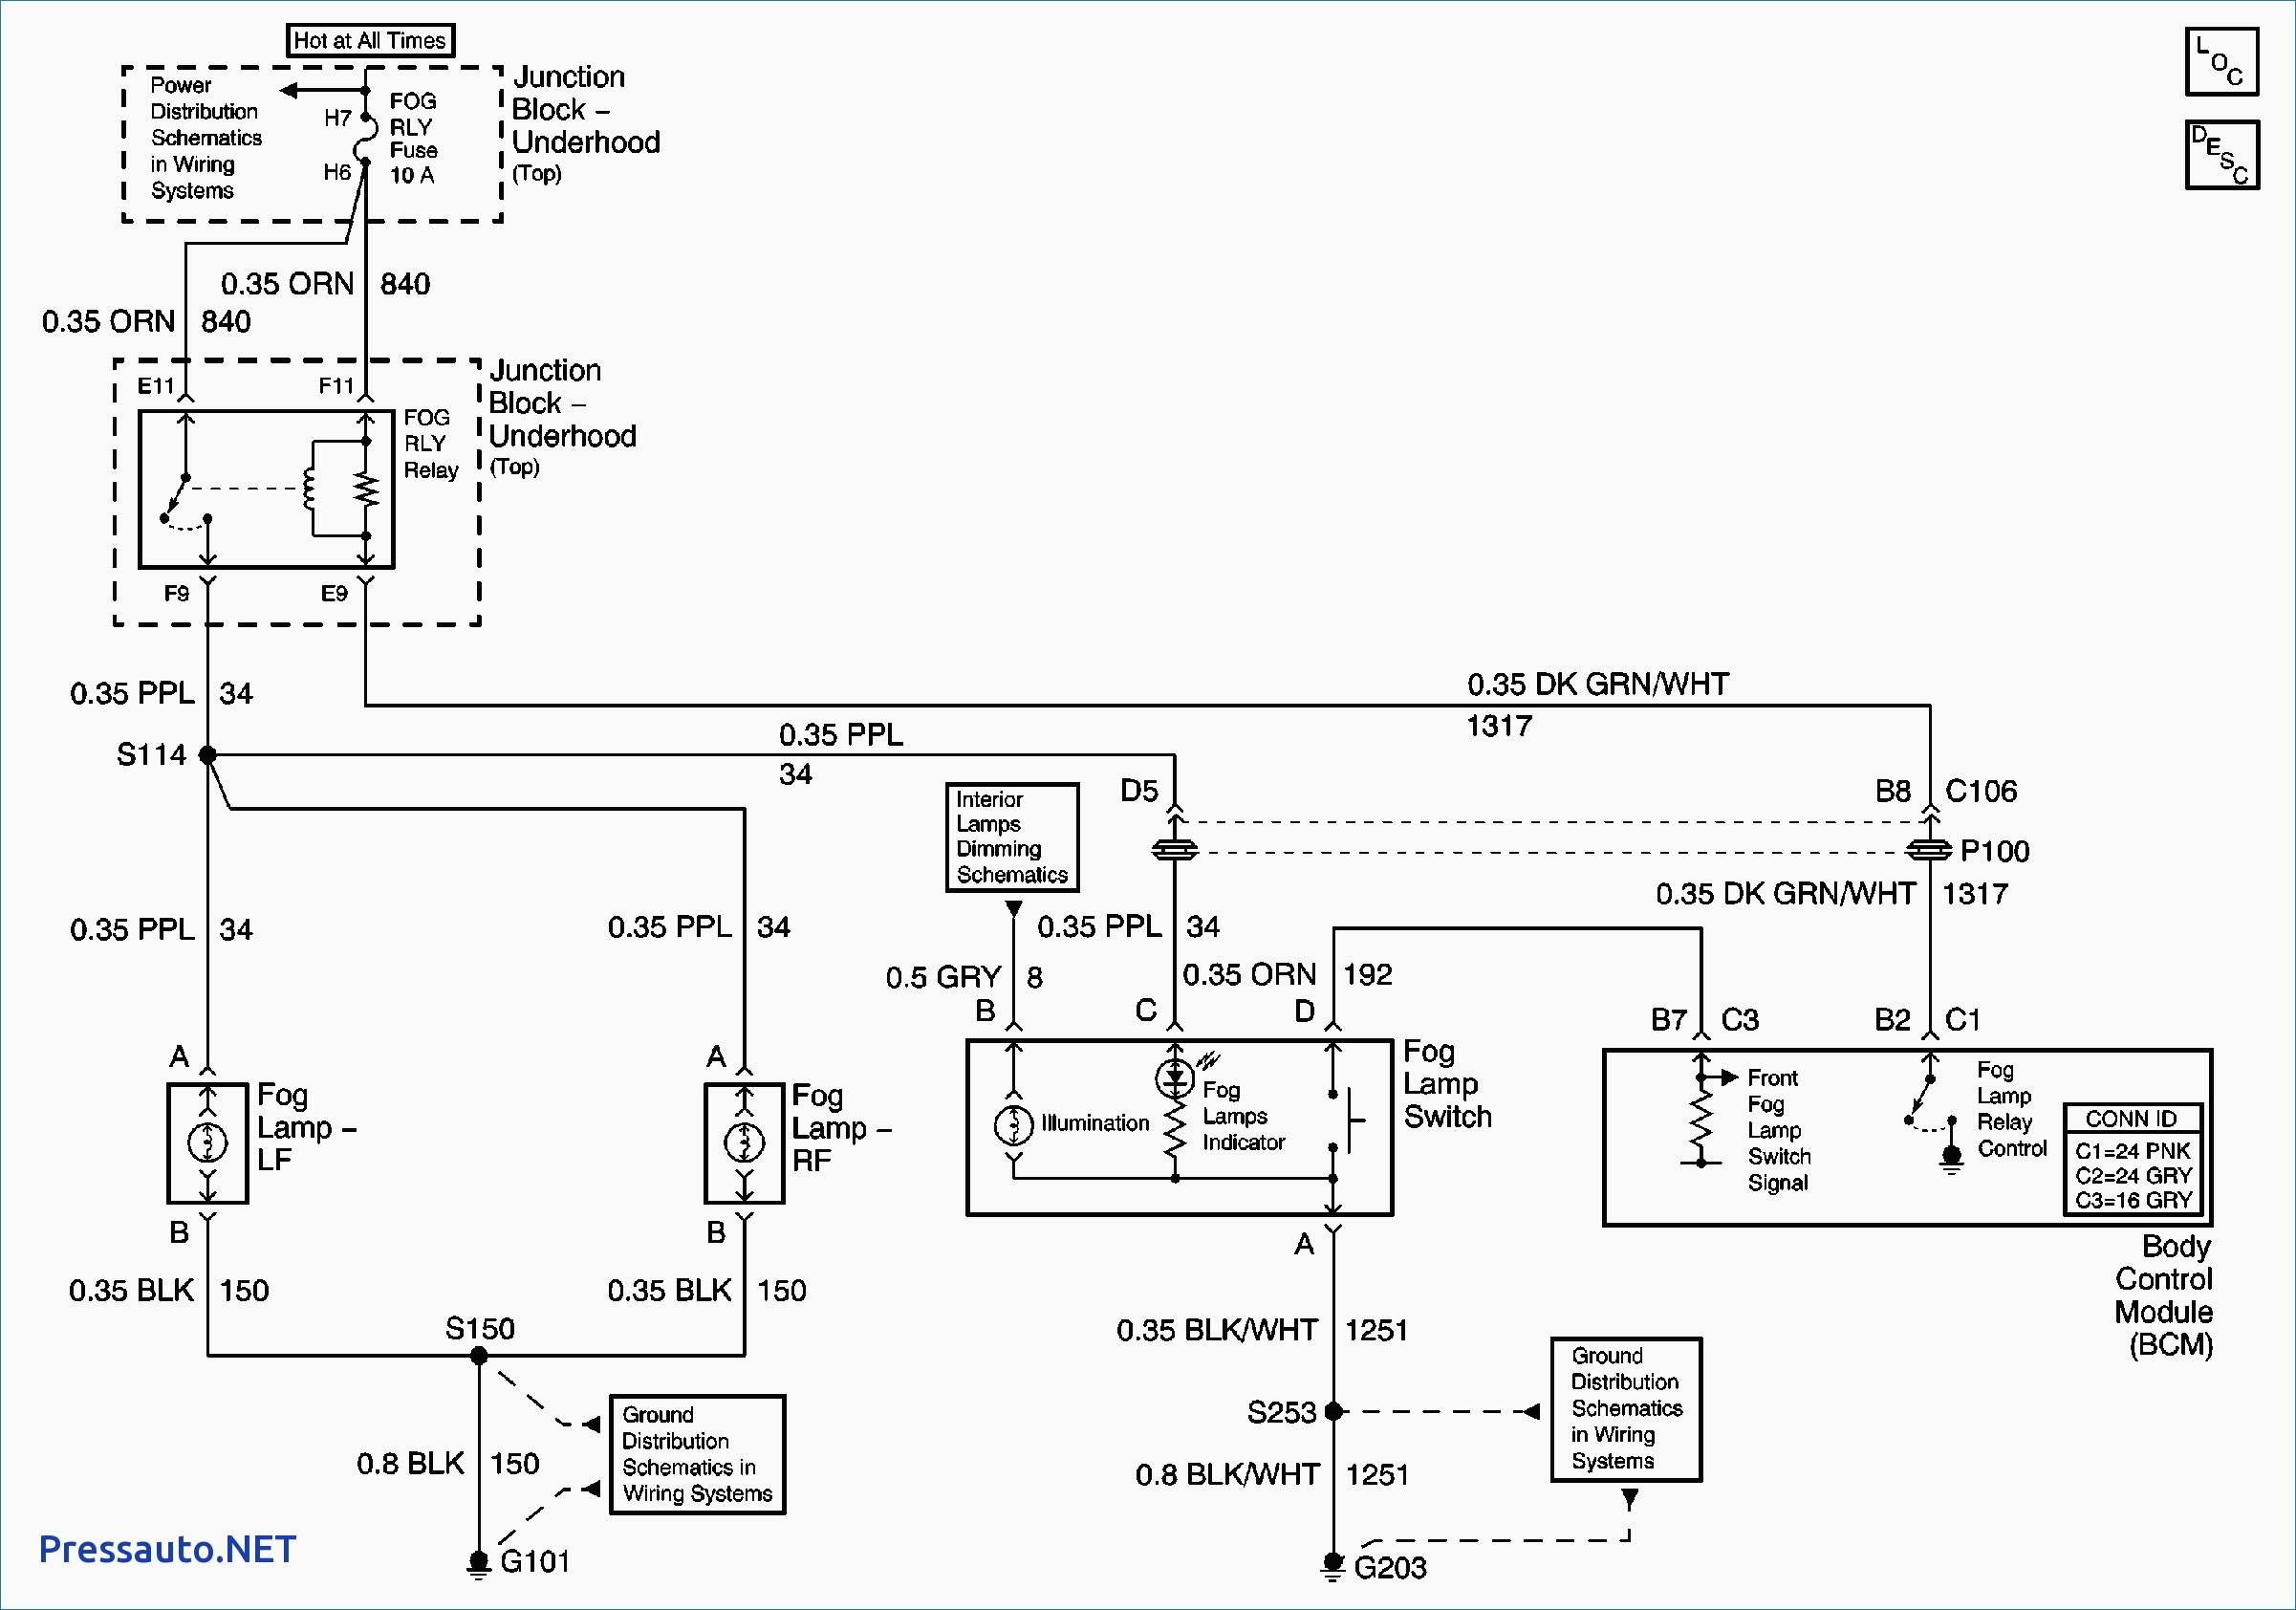 DIAGRAM] 630 Wiring Diagram For Kc Daylighters FULL Version ... on